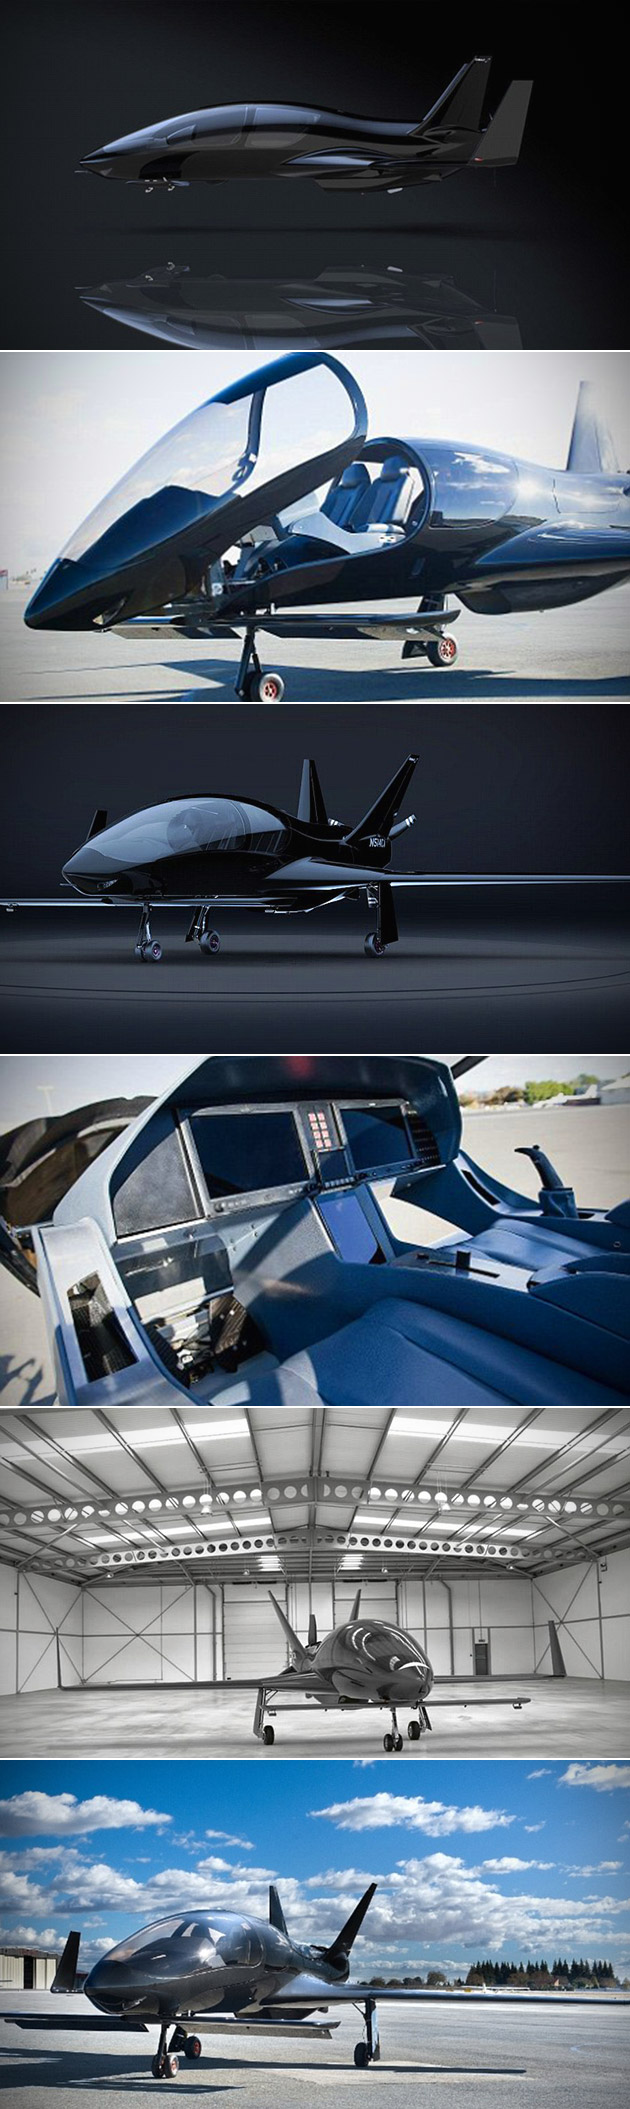 Cobalt Co50 Valkyrie Personal Fighter Jet